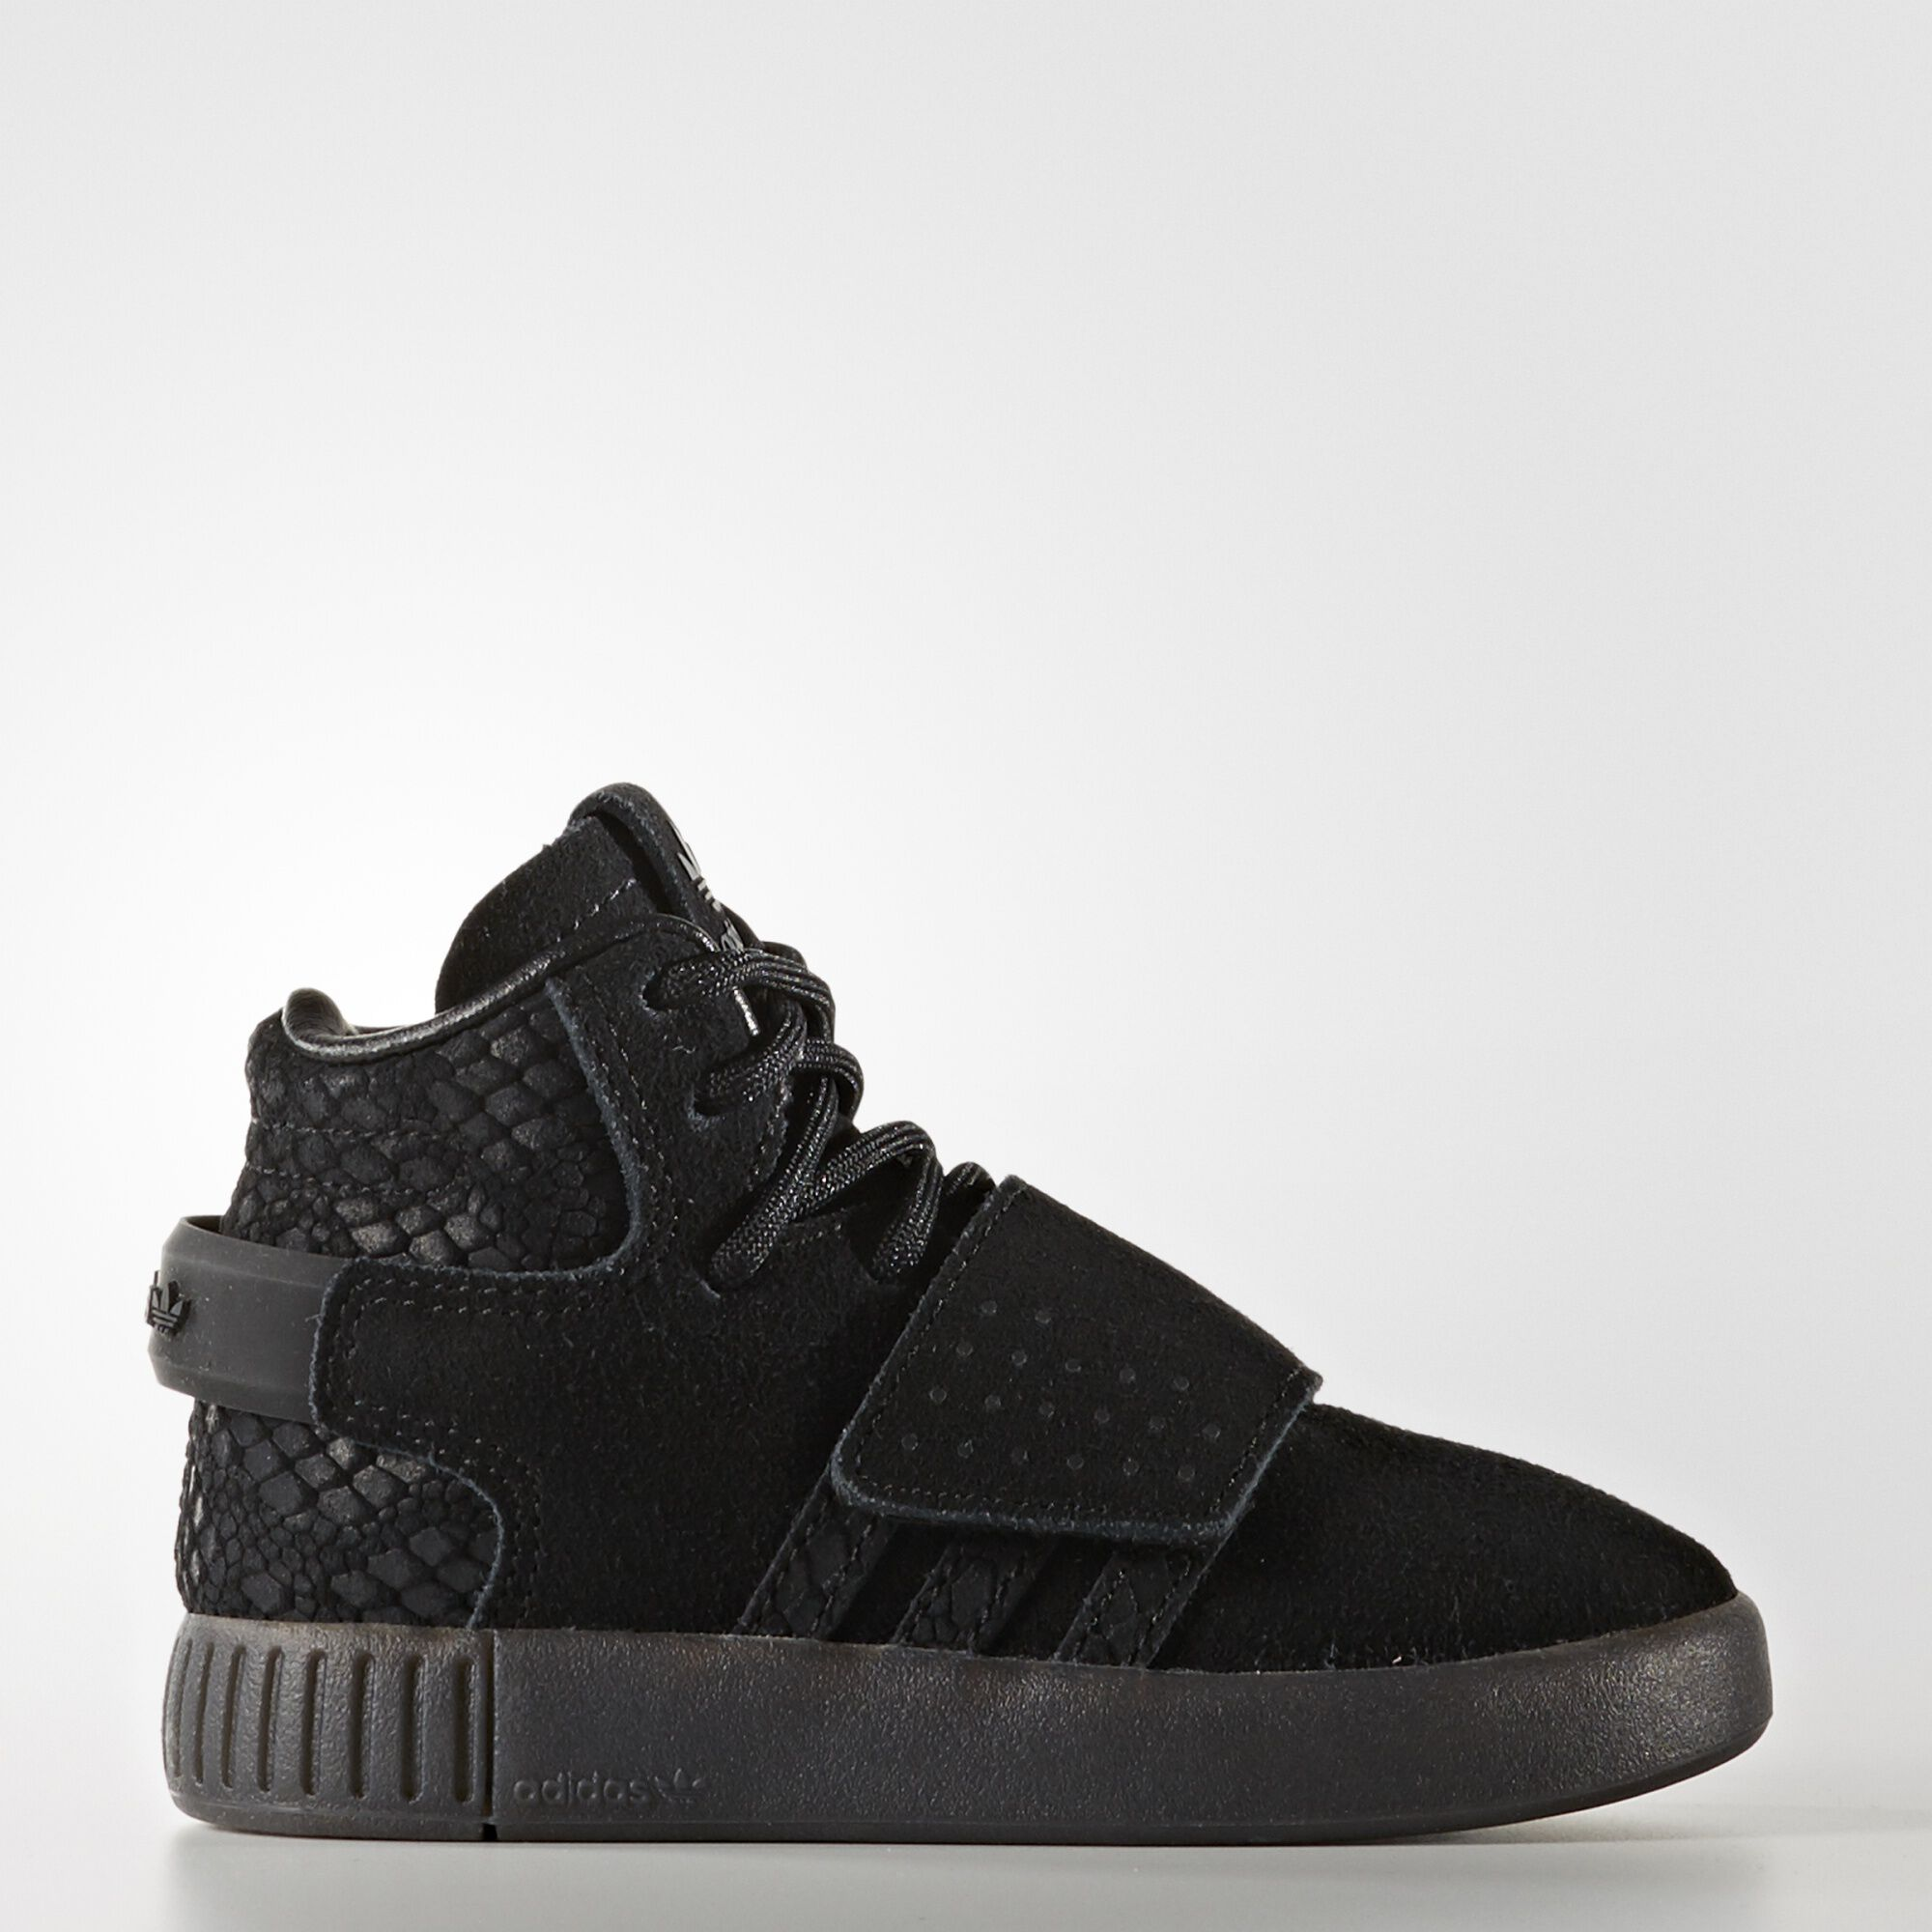 adidas Originals Tubular Defiant neoprene and suede sneakers